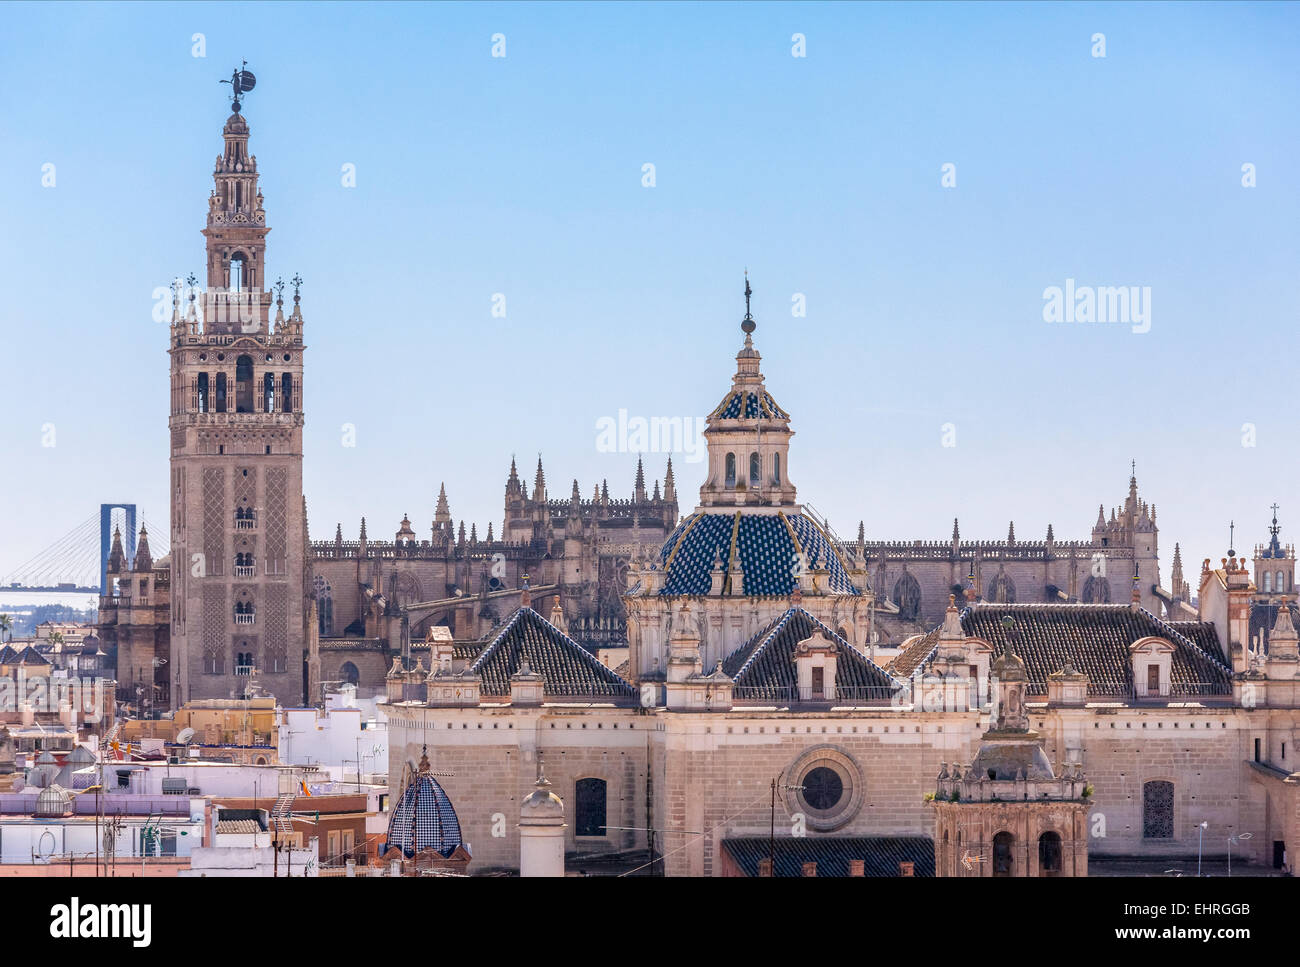 Seville Spain skyline with La Giralda tower Cathedral El Salvador Church and bridge seen from the Parasol Metropol - Stock Image